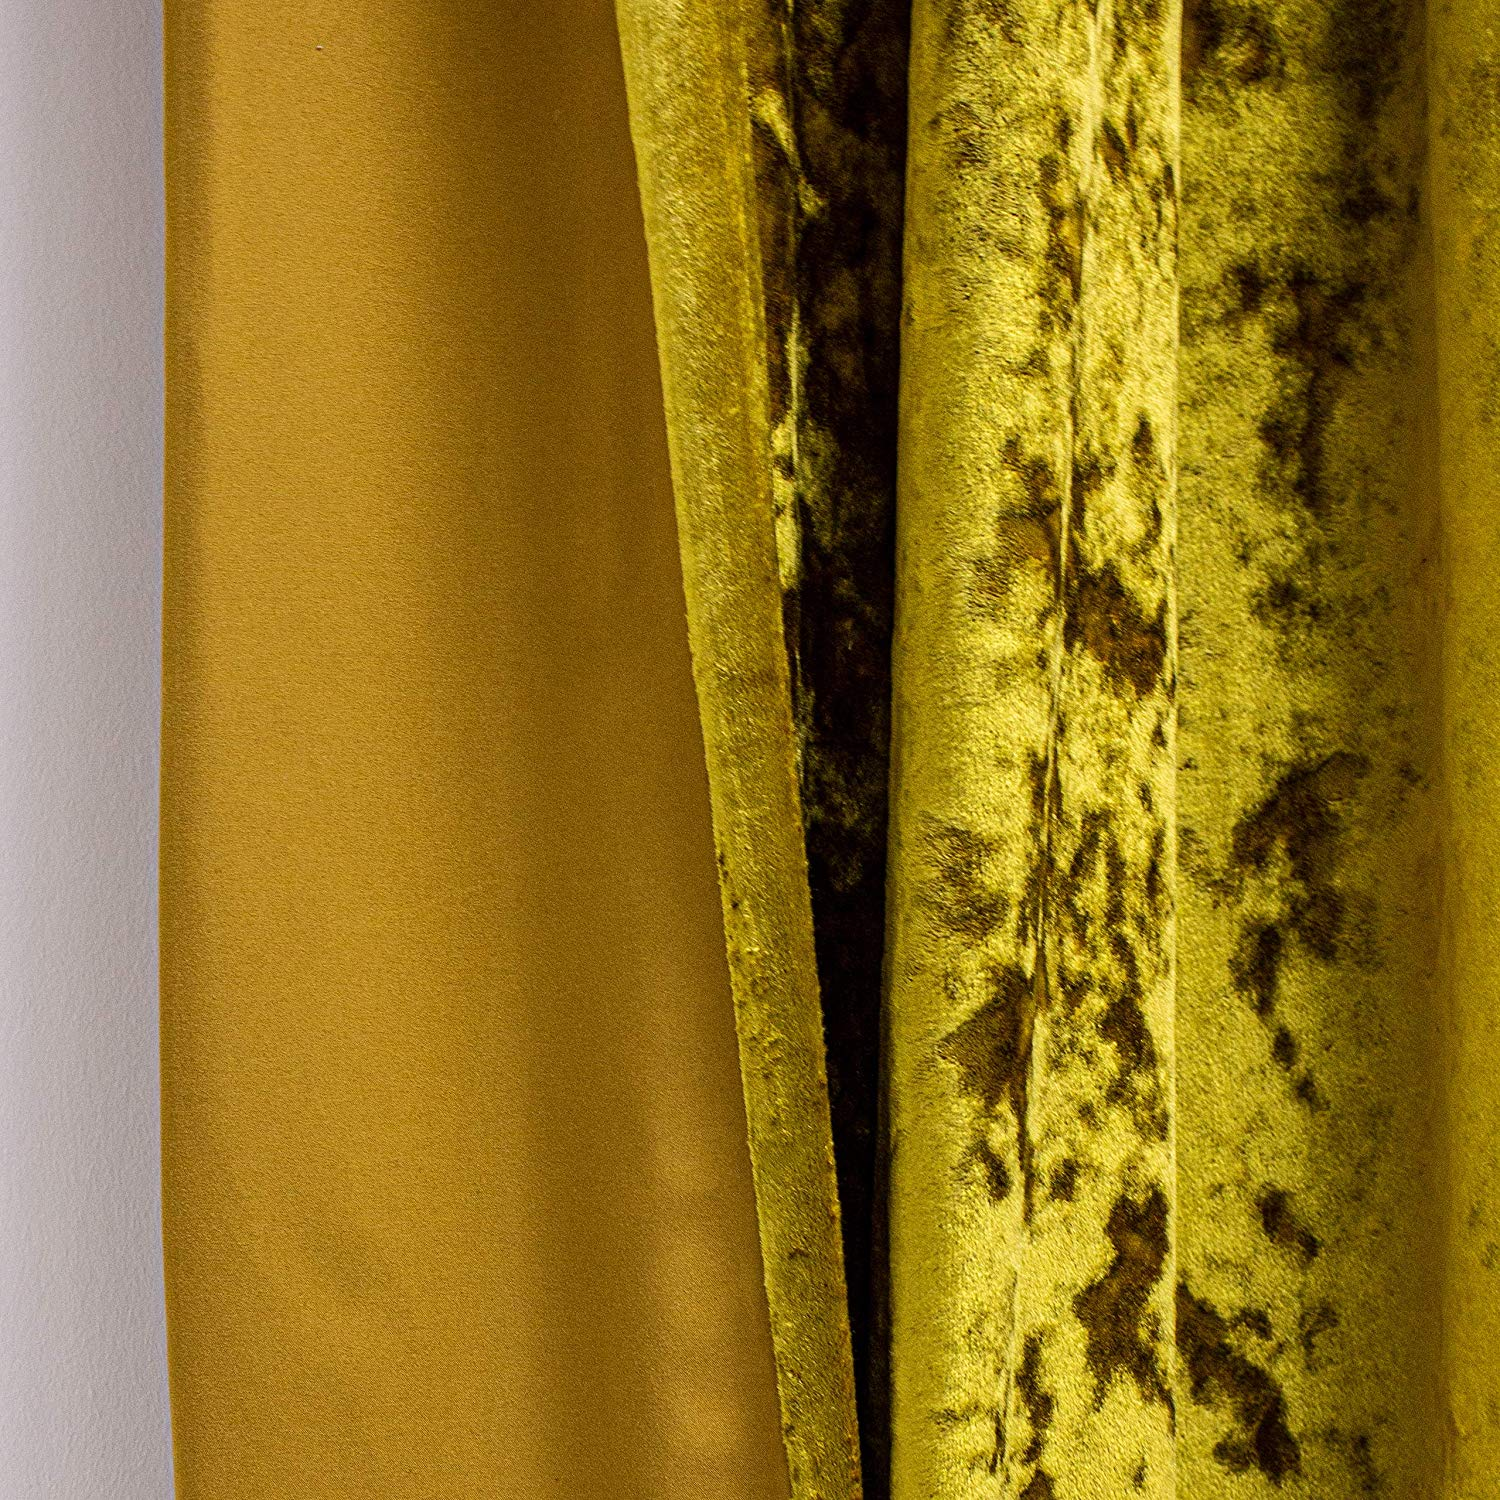 The Home Furnishings Company Verona Ochre Velvet Curtains/Bedding/Furnishings